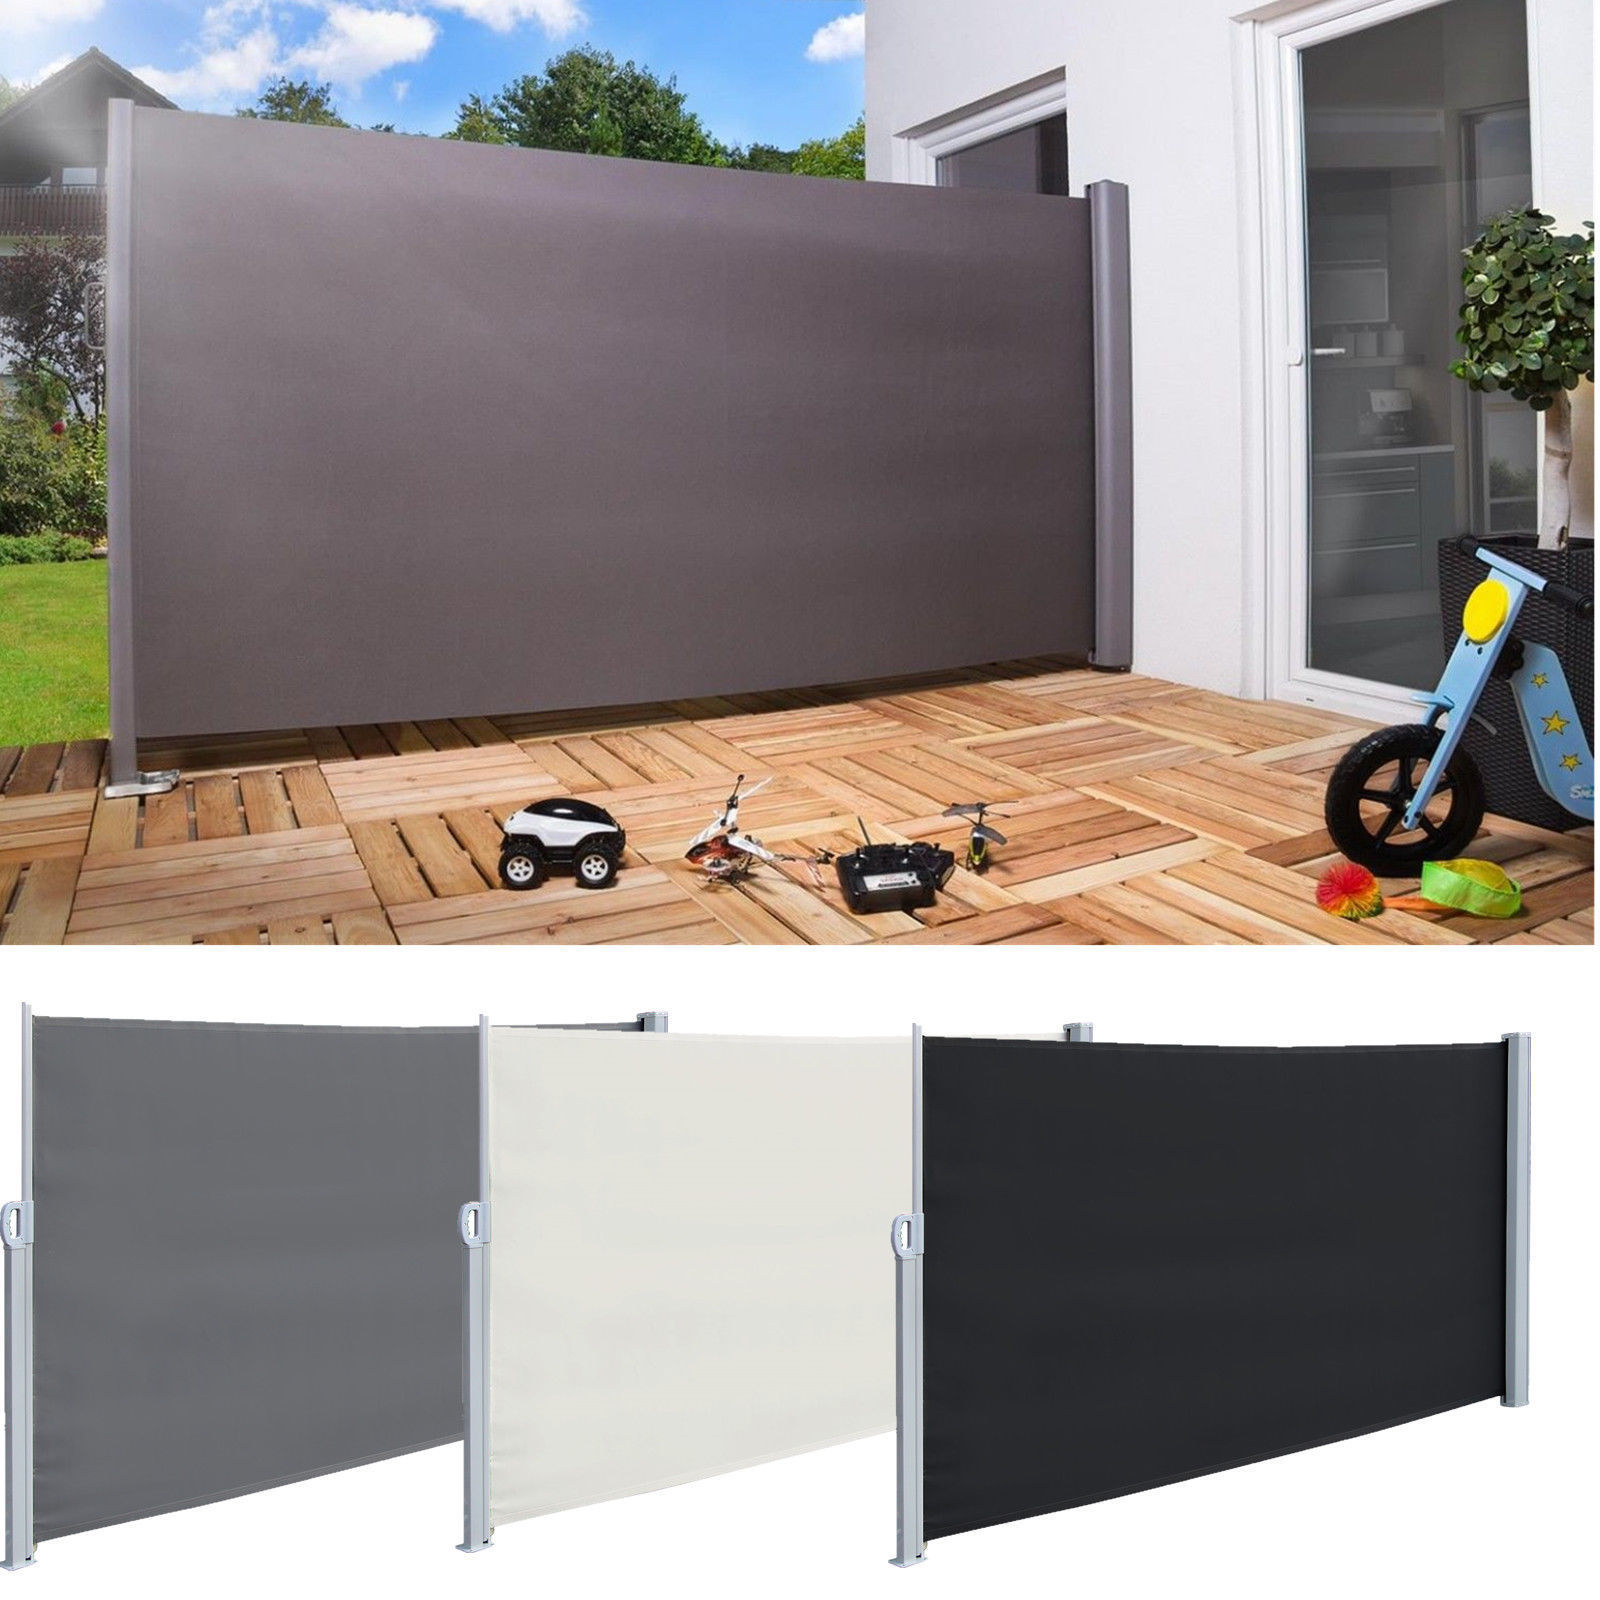 5.9'x9.8' Sunshade Retractable Side Awning Outdoor Patio Privacy Divider Screen